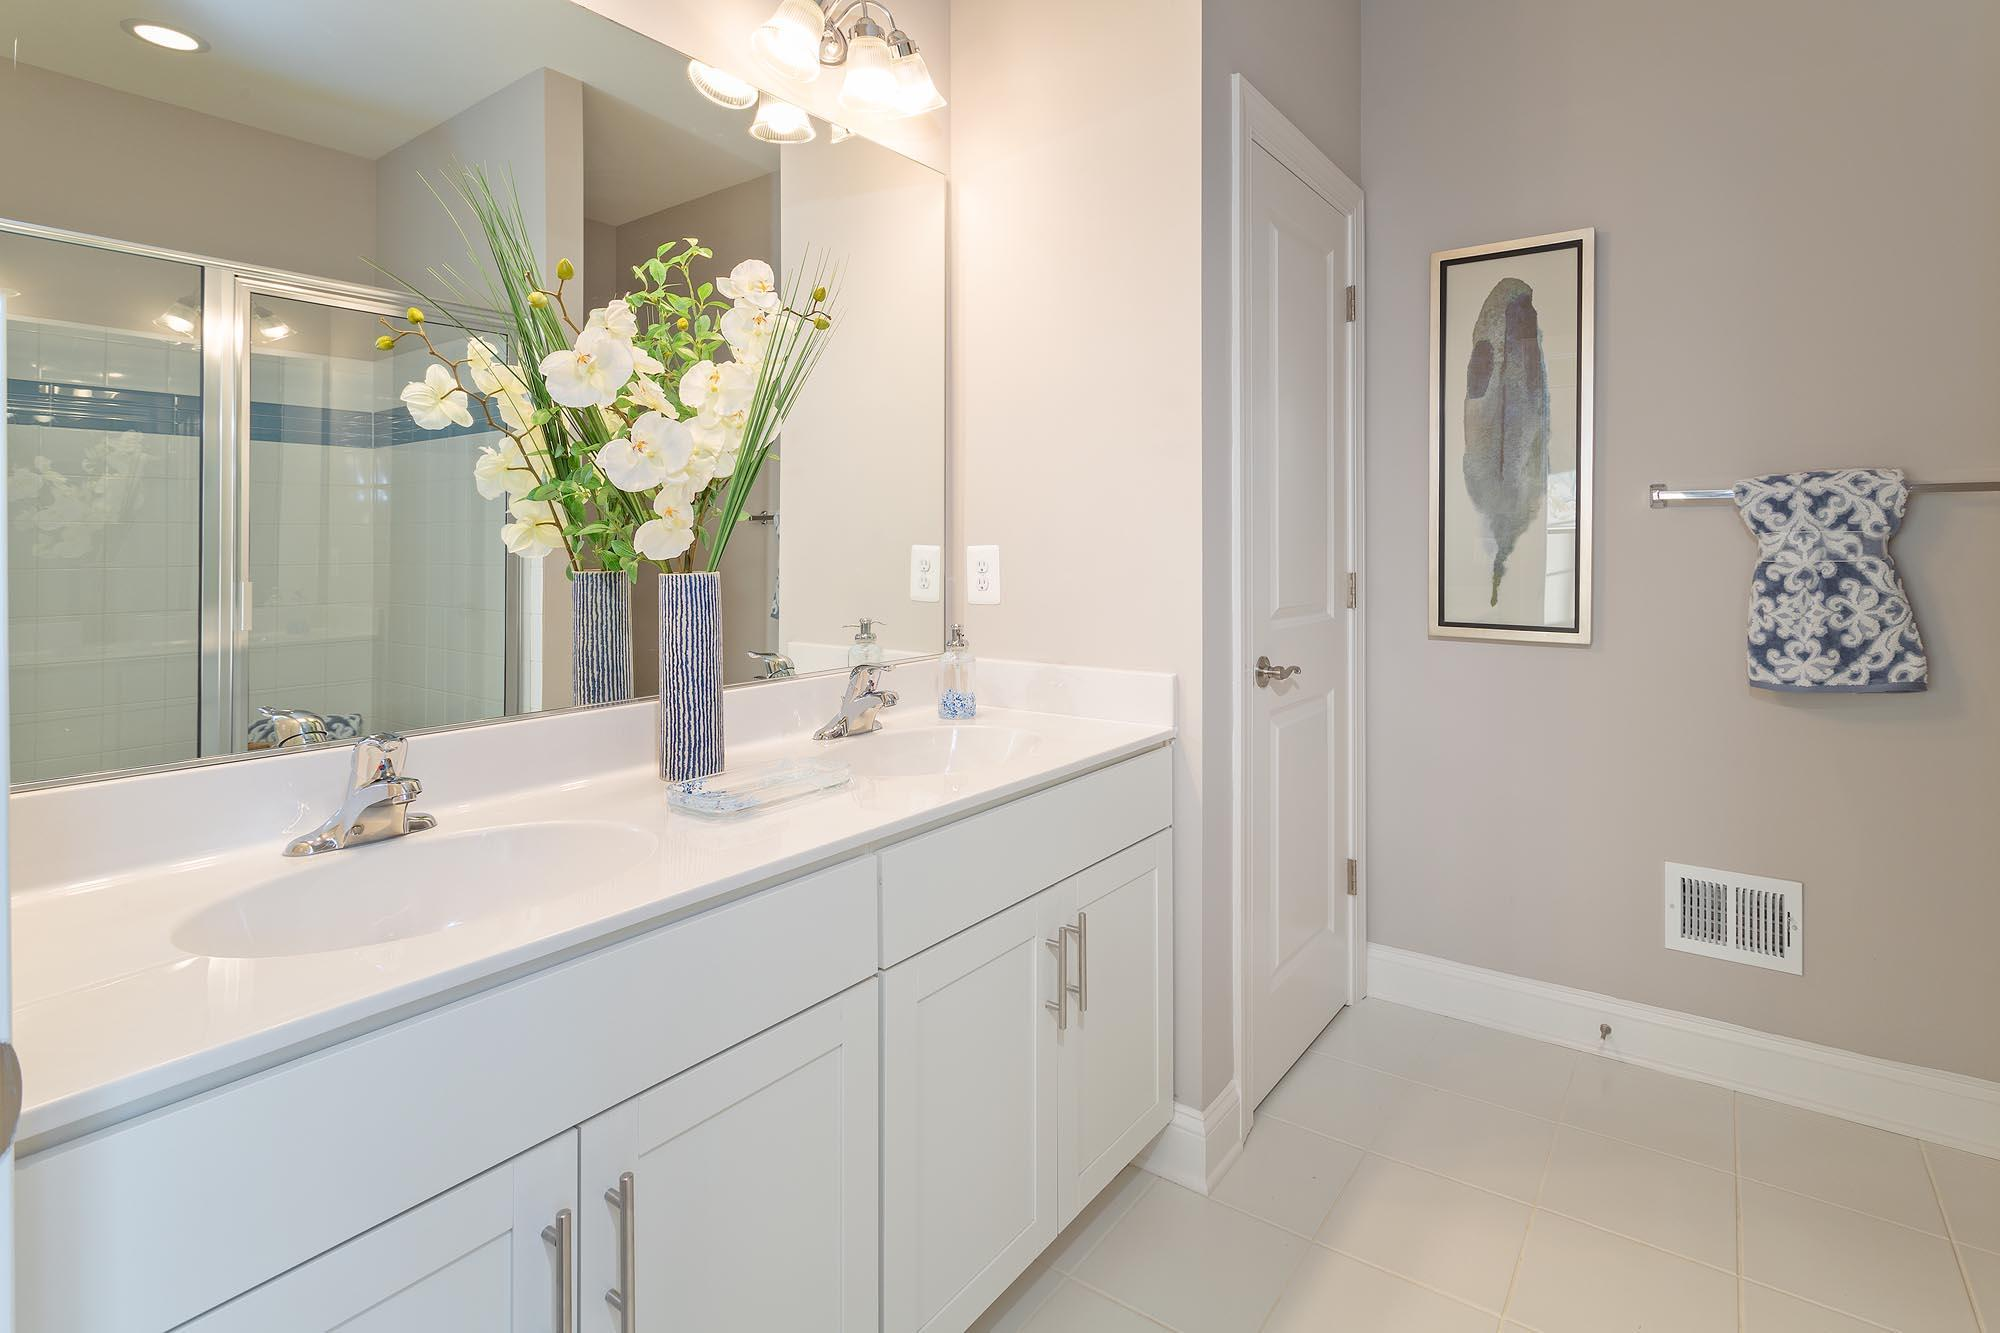 Bathroom featured in the Linden By Timberlake Homes in Dover, DE